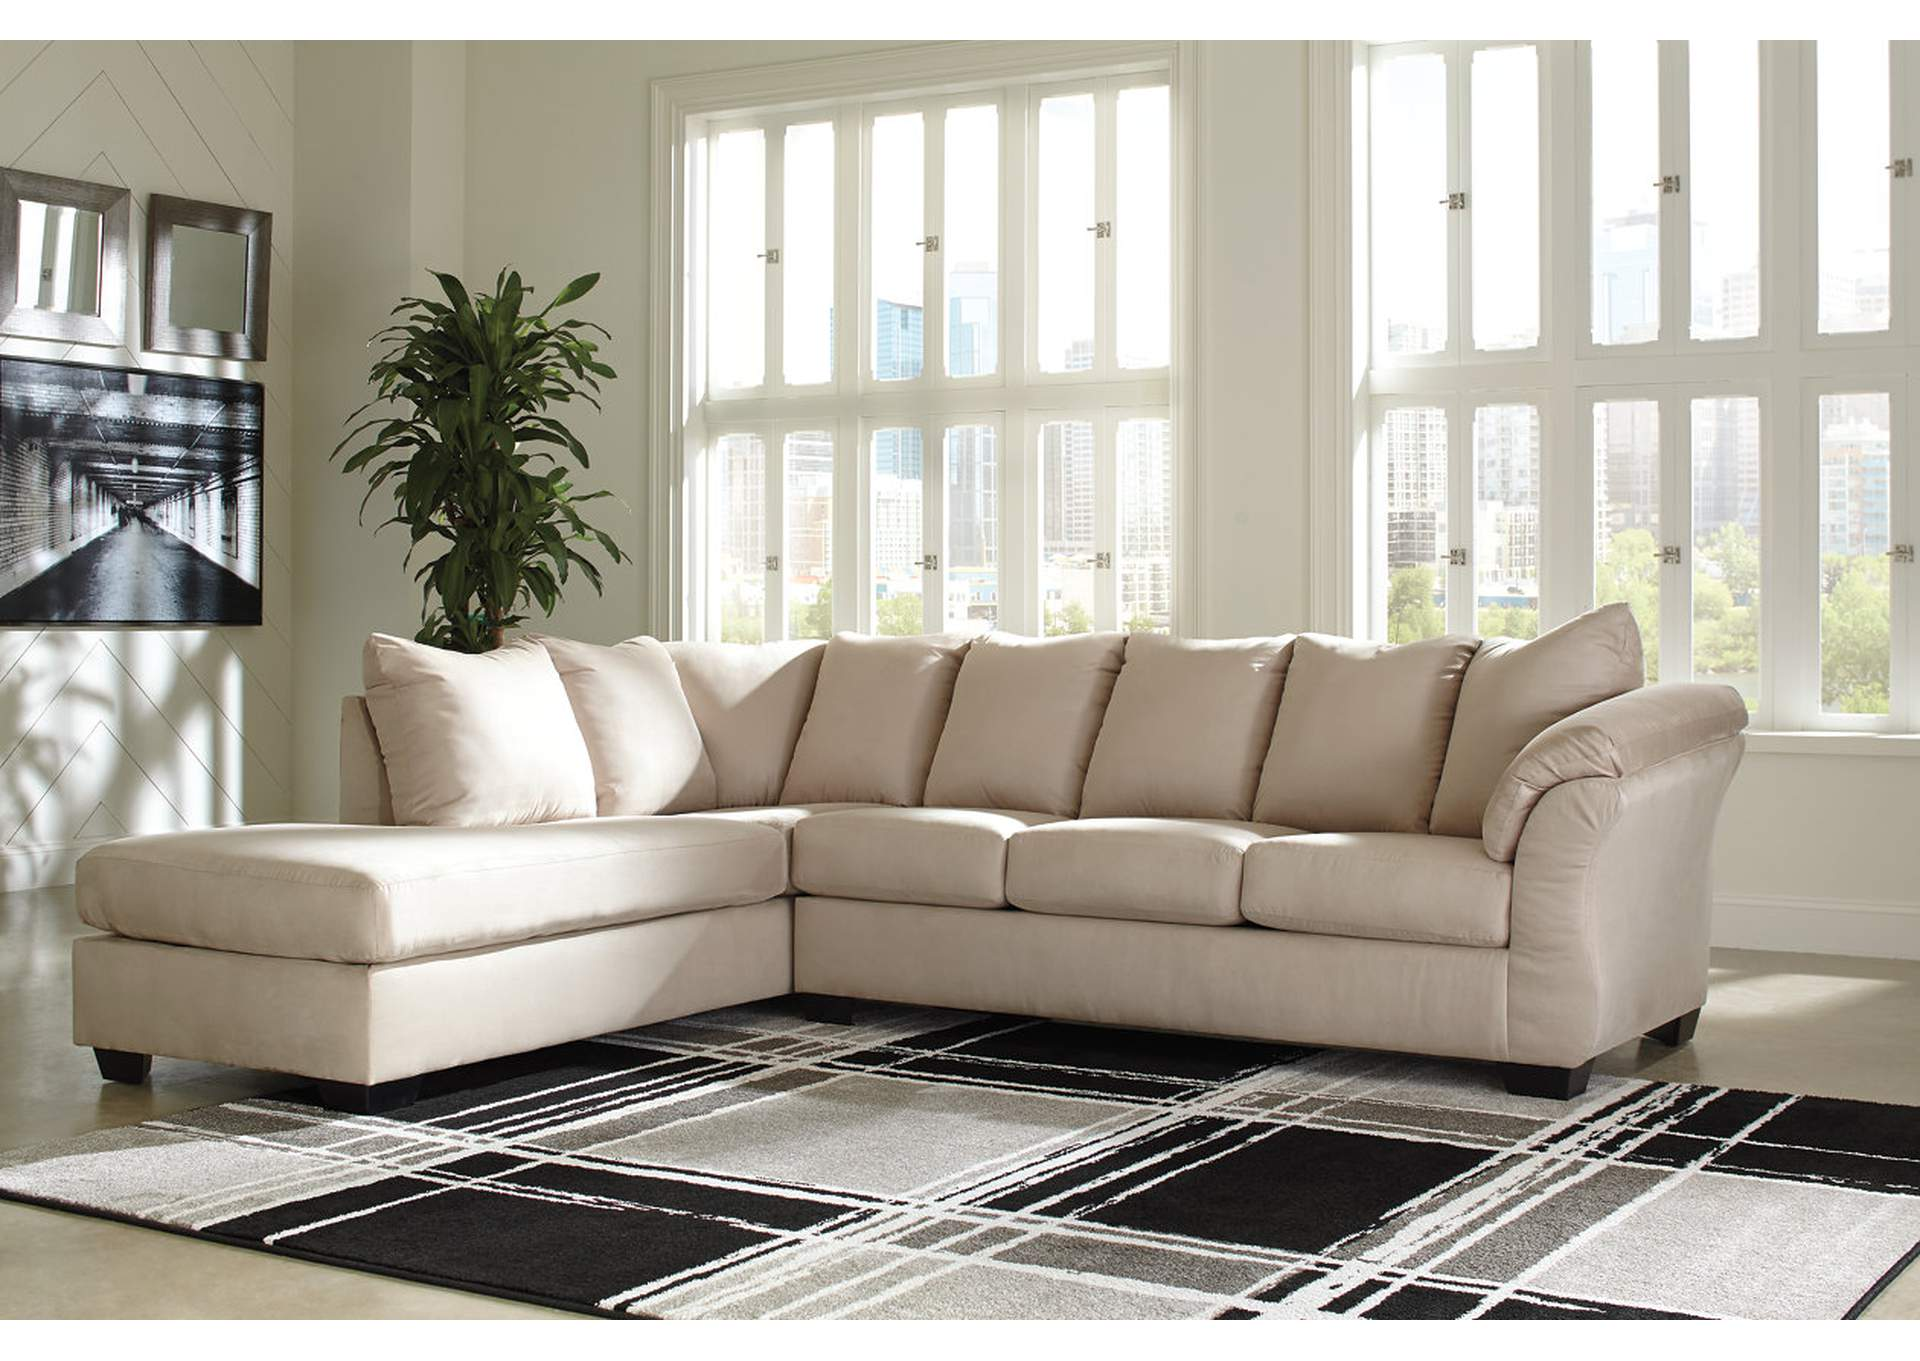 Darcy 2-Piece Sectional with Chaise,Signature Design By Ashley